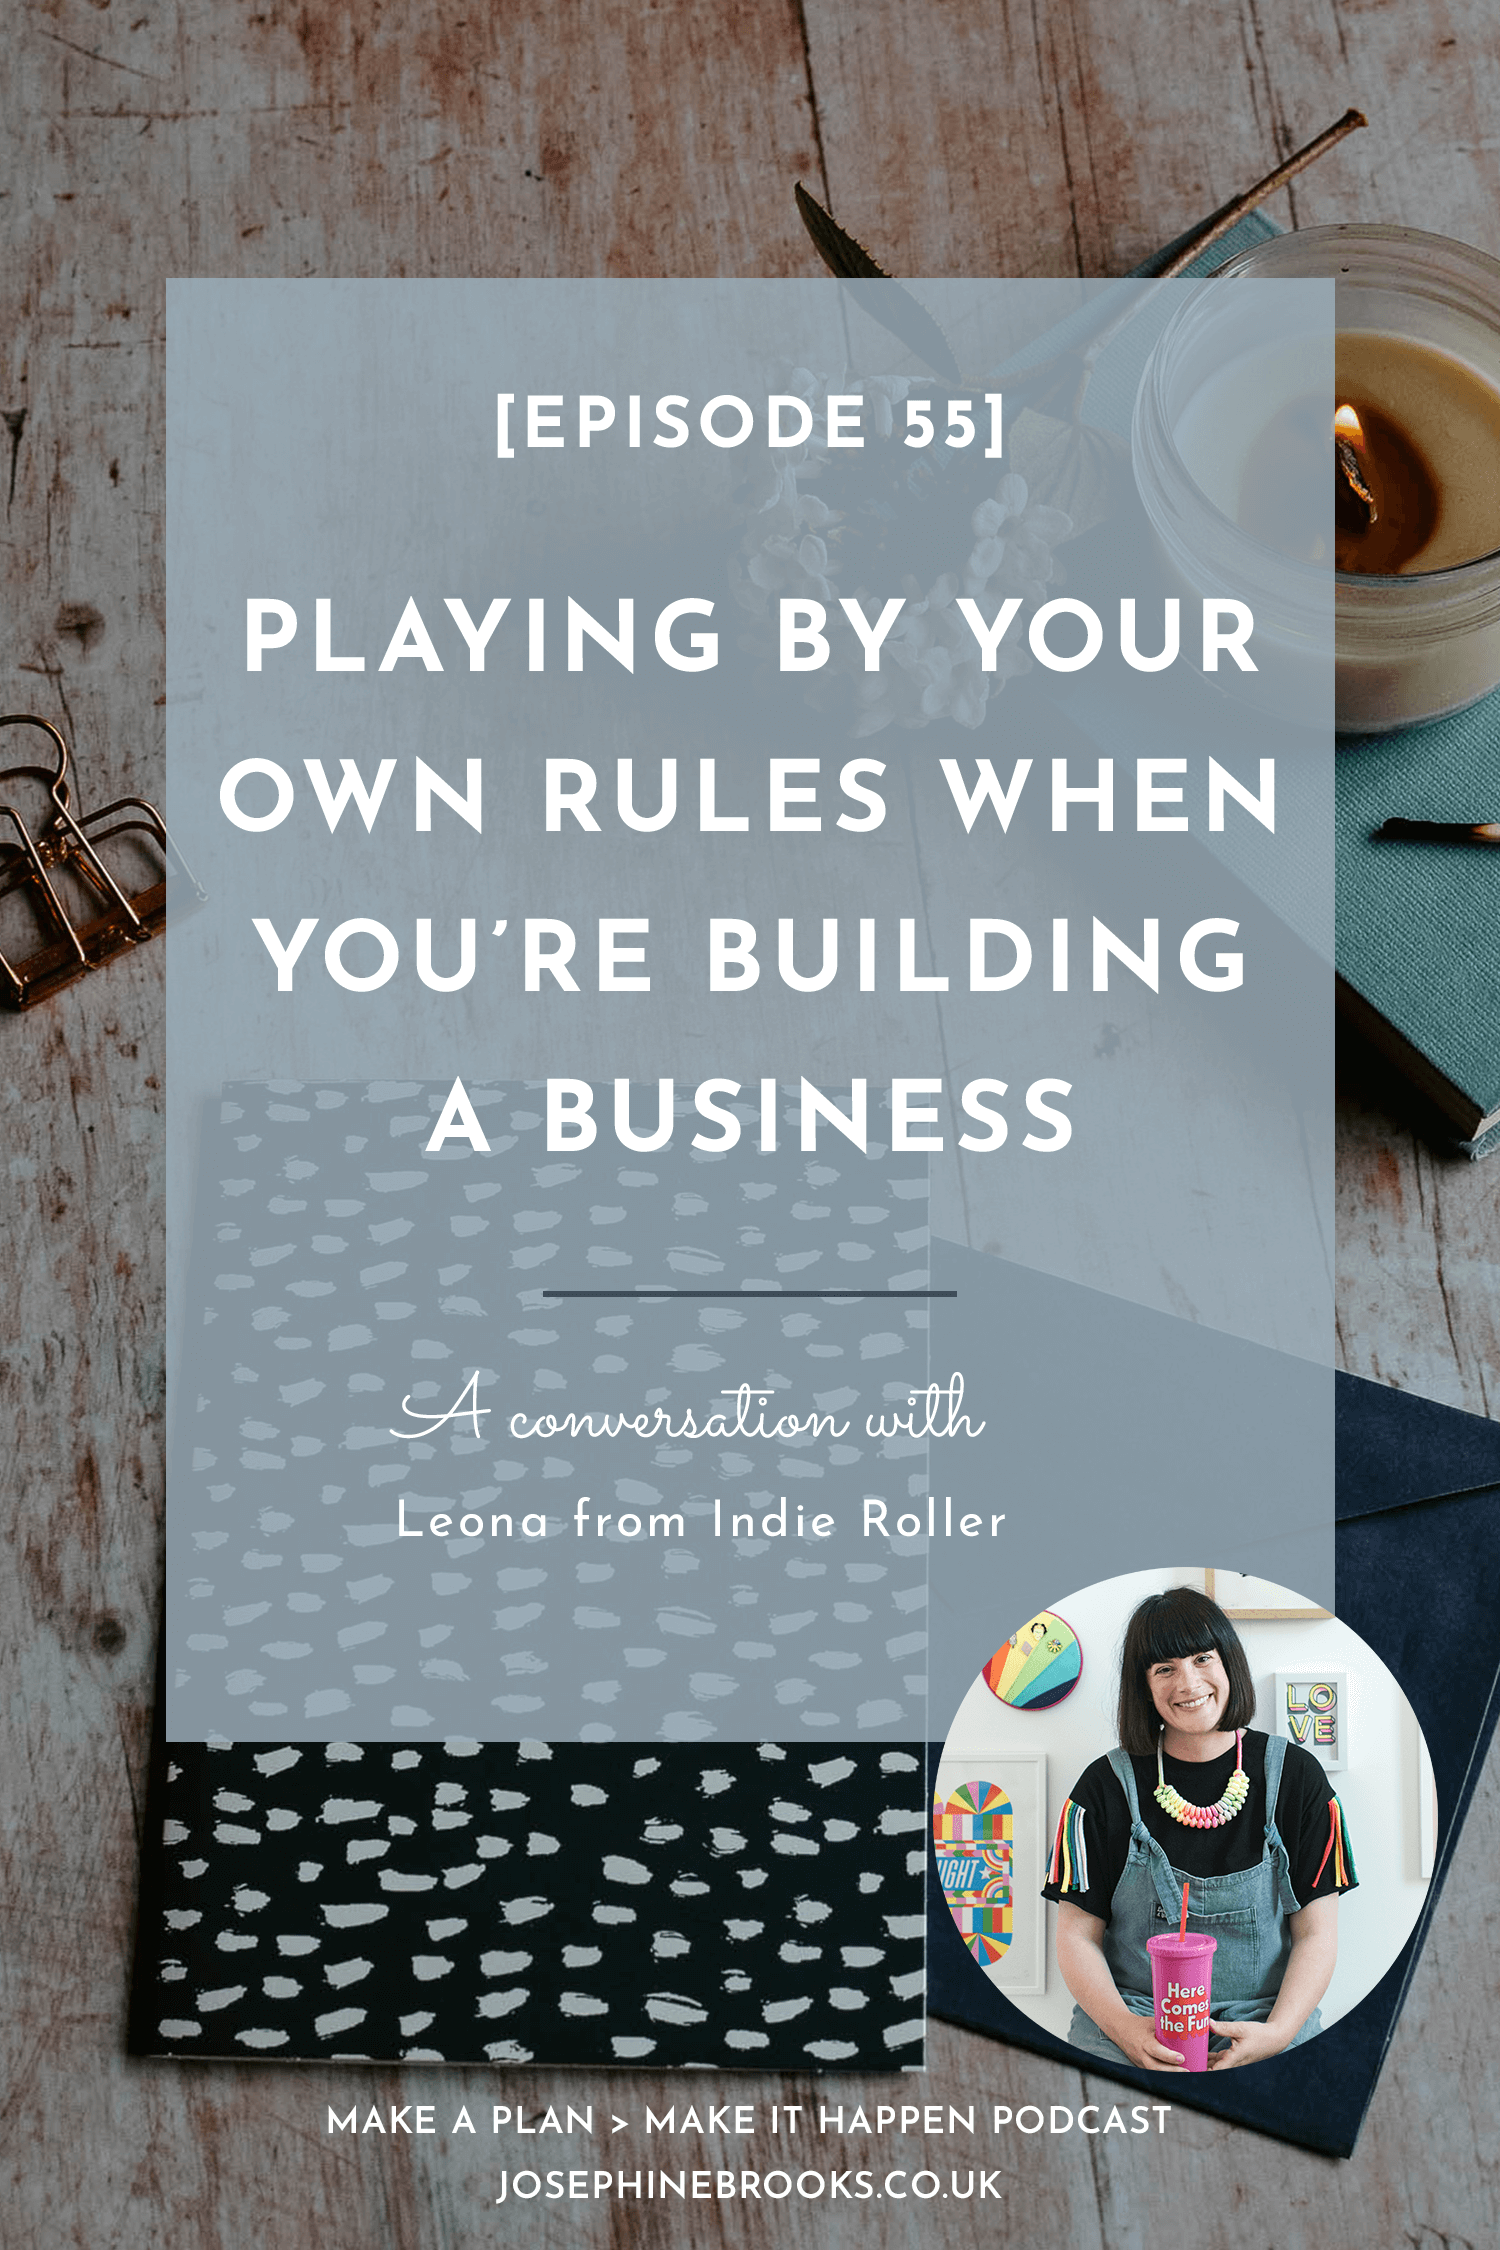 Playing by your own rules when you're building a business with Leona Thriftola - Make a Plan Make it Happen podcast - Hosted by Josephine Brooks